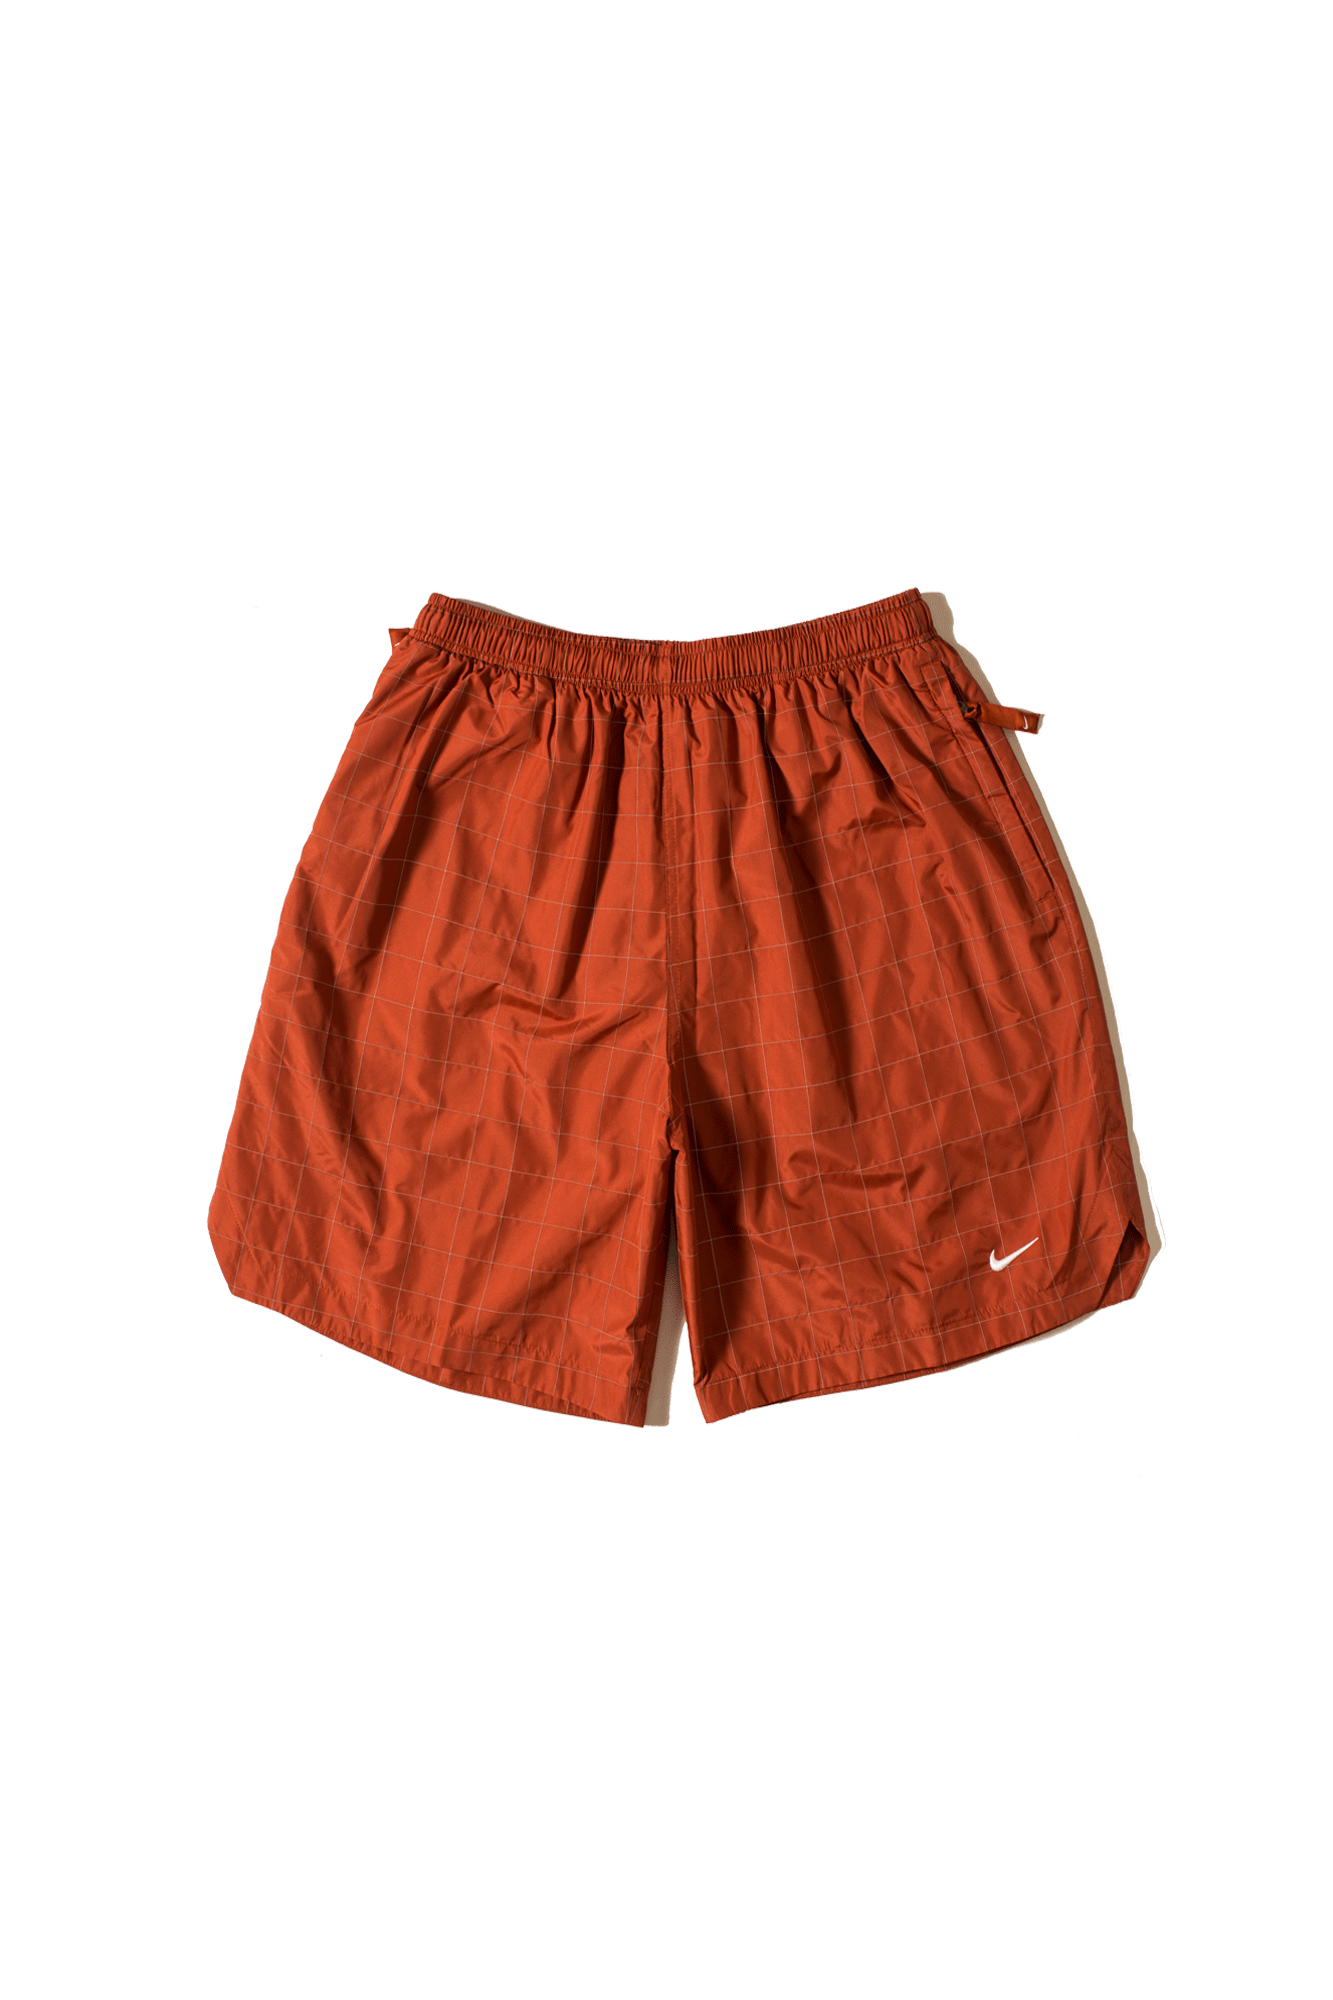 M Nrg Flash Short Orange